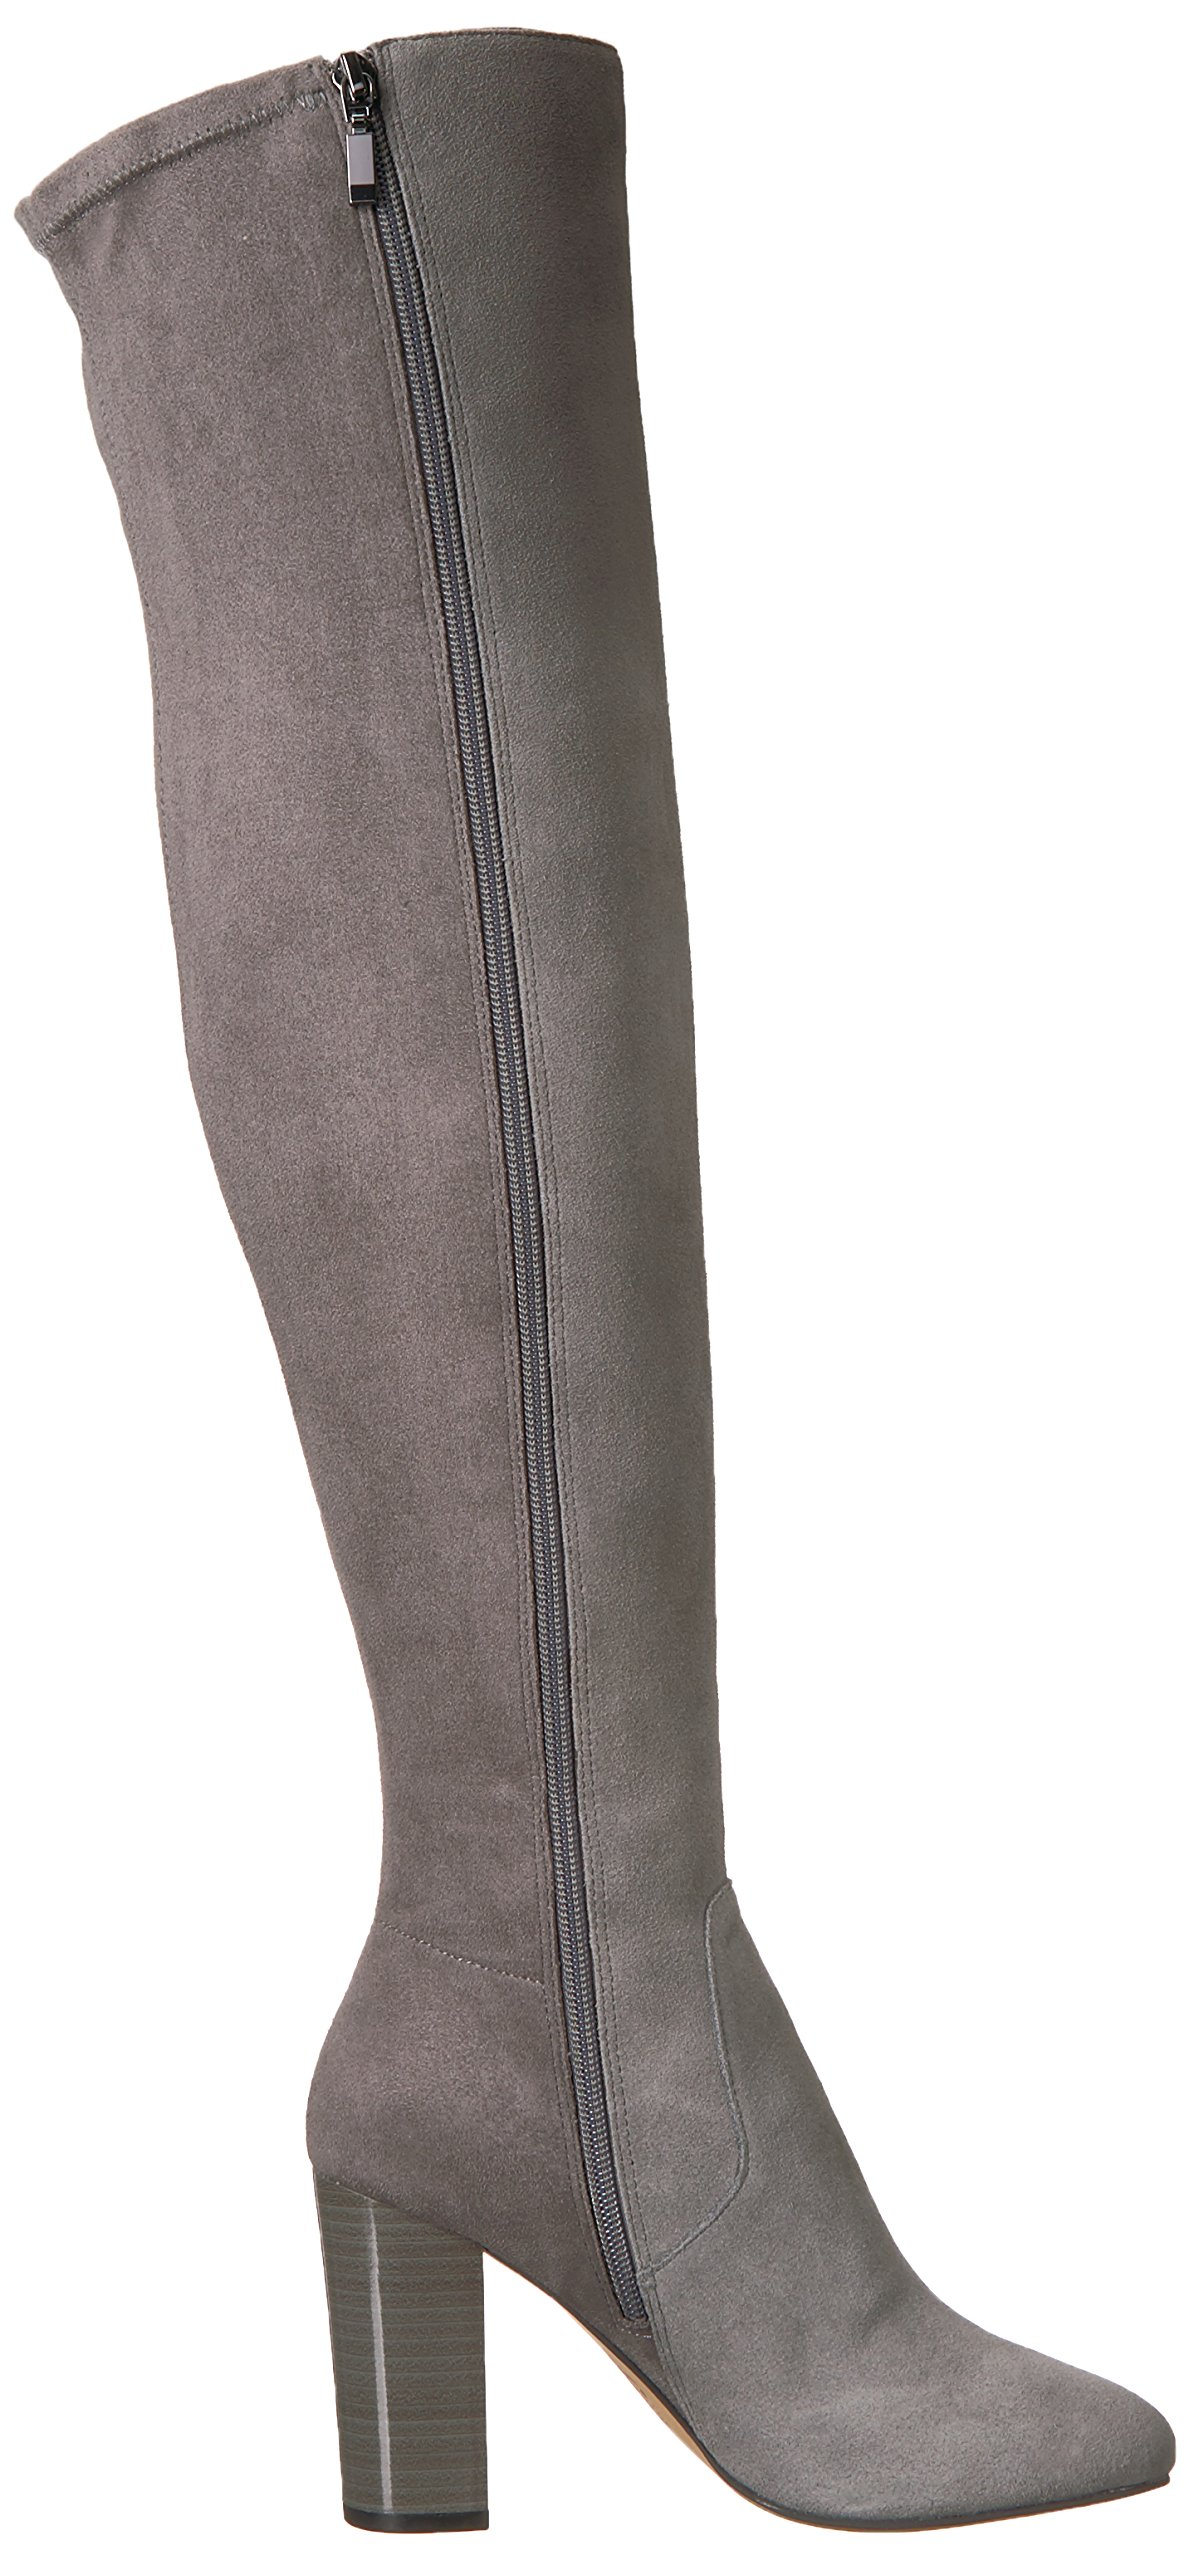 The Fix Women's Lyndsey Over-The-Knee Block-Heel Boot, Elephant Grey, 6.5 M US by The Fix (Image #7)